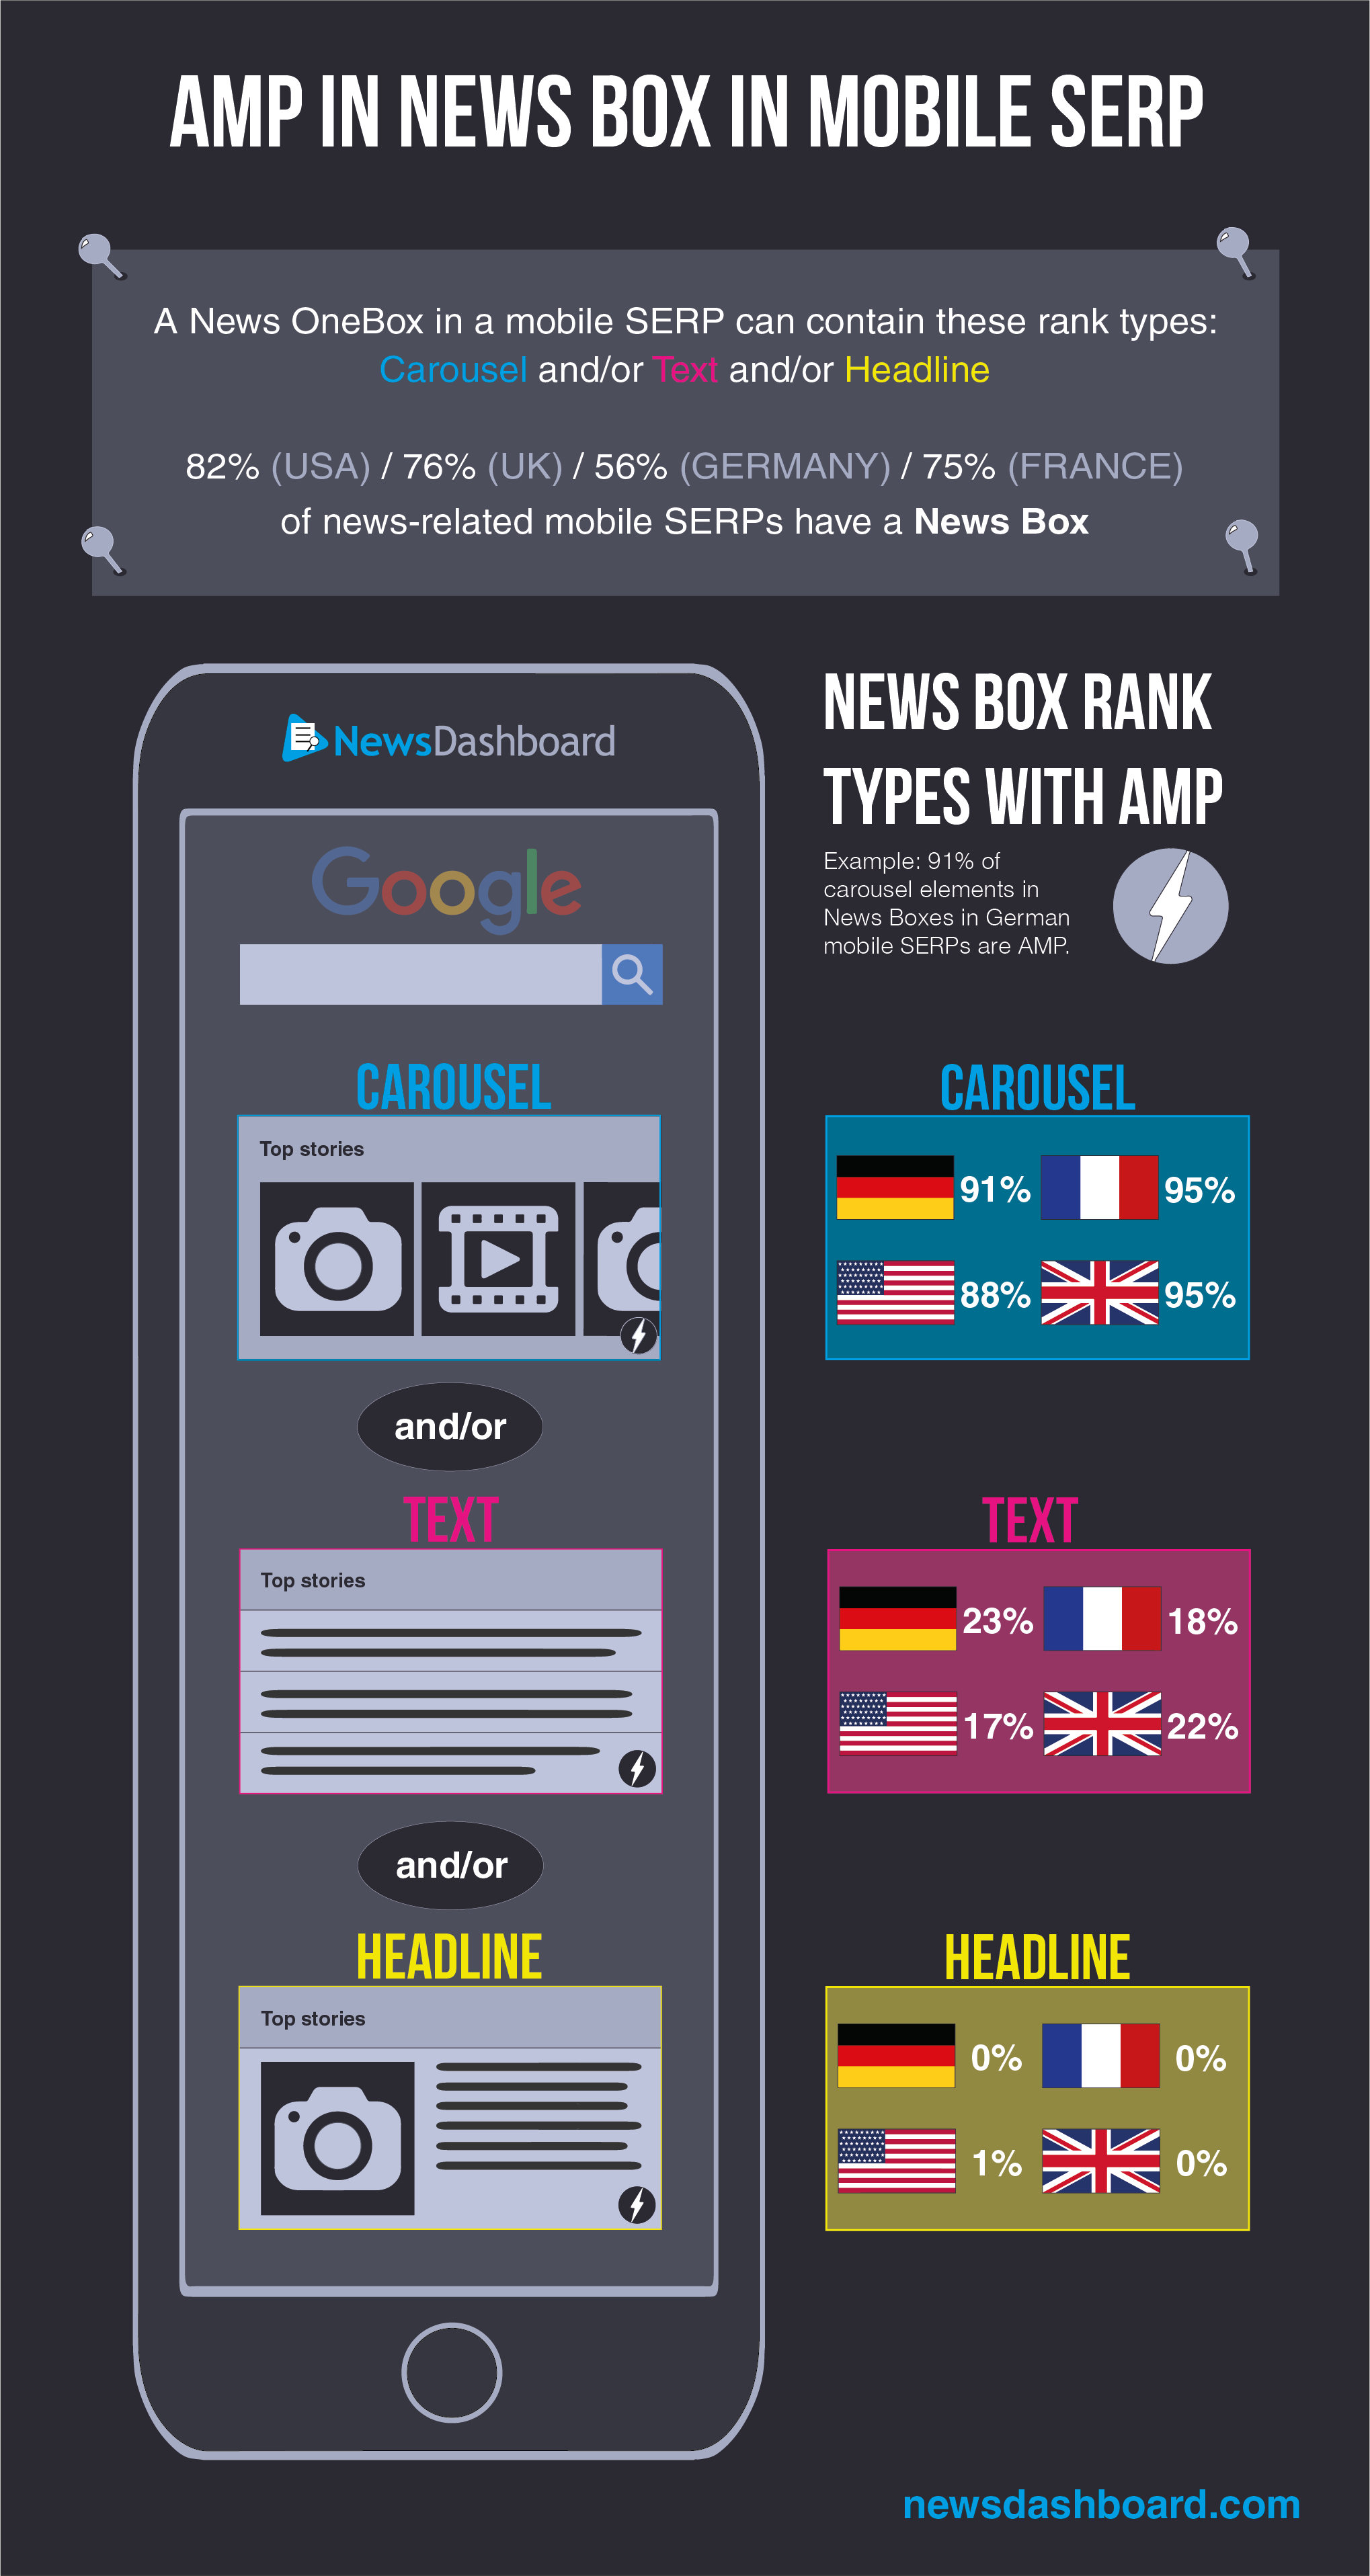 HIgh figures for AMP in mobile carousel - AMP in news text links strongly rising